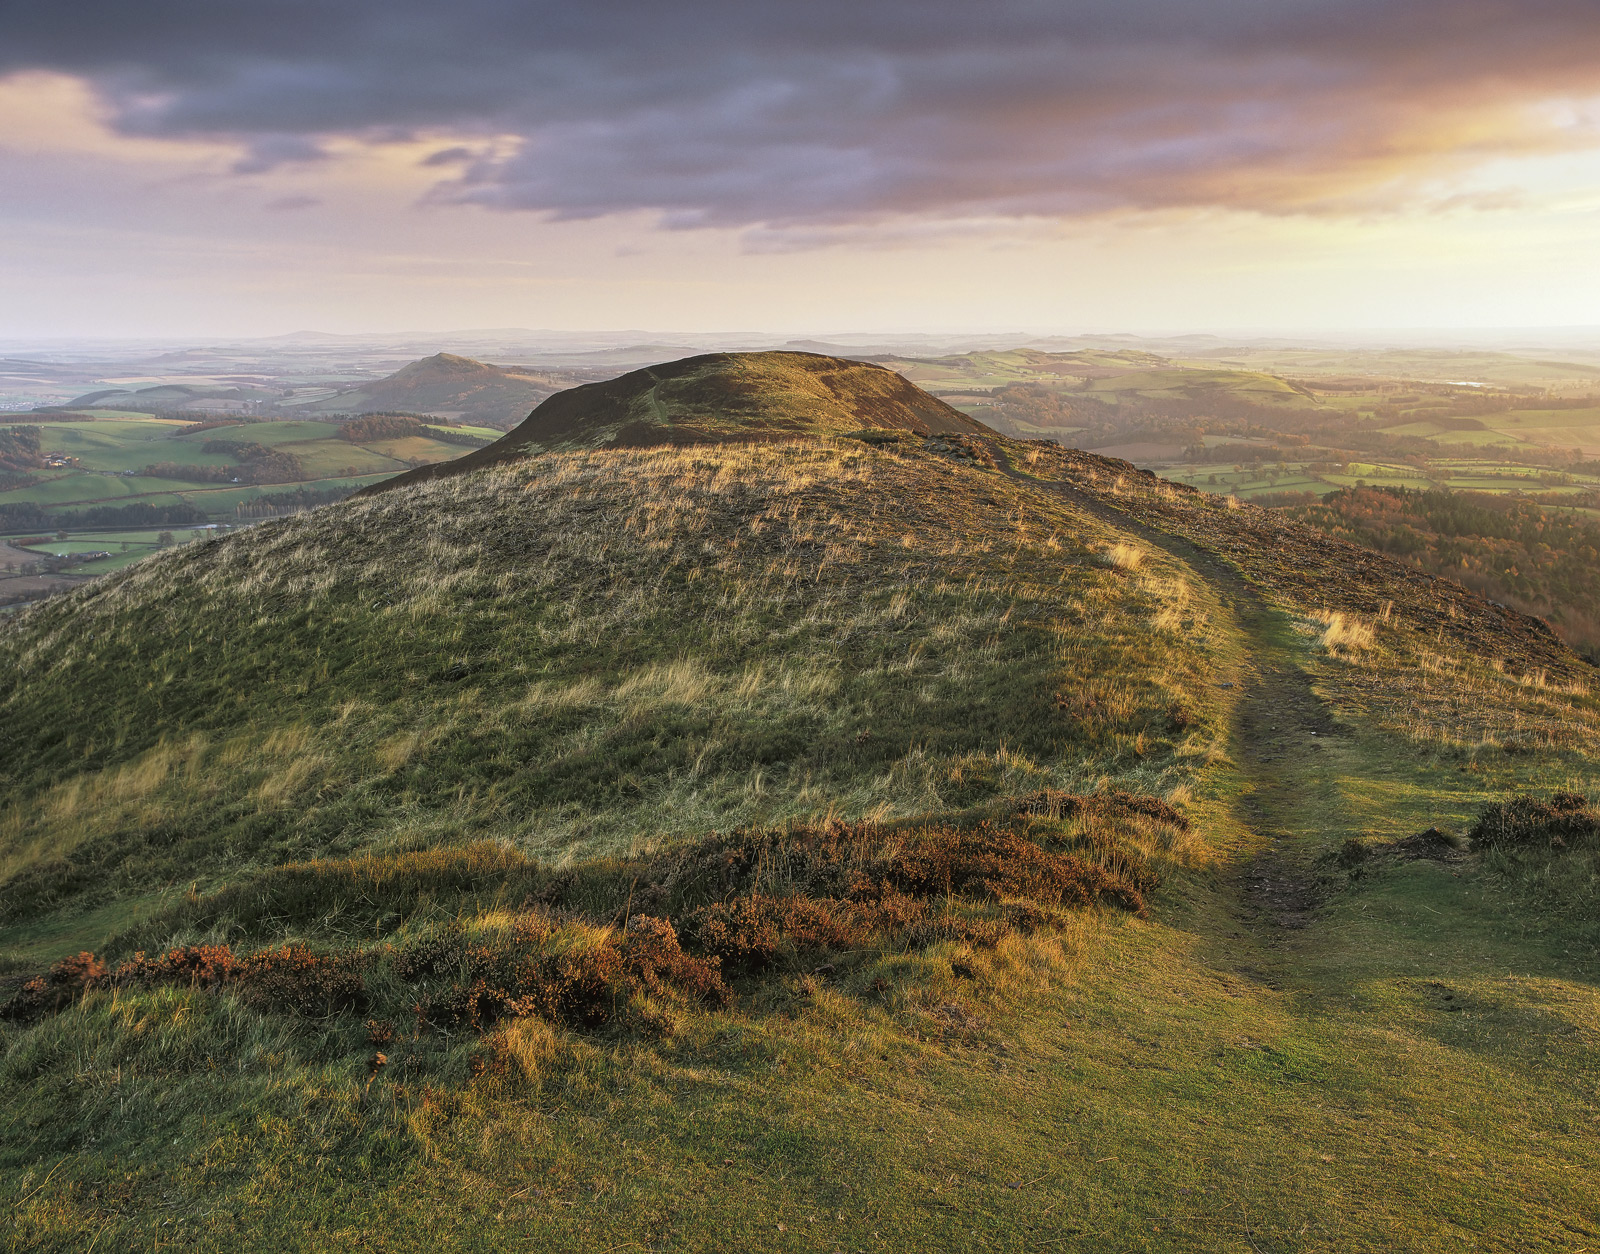 The softest wash of golden sunlight flickered across the tops of the Eildon Hills near the town of Melrose in the Scottish Borders...